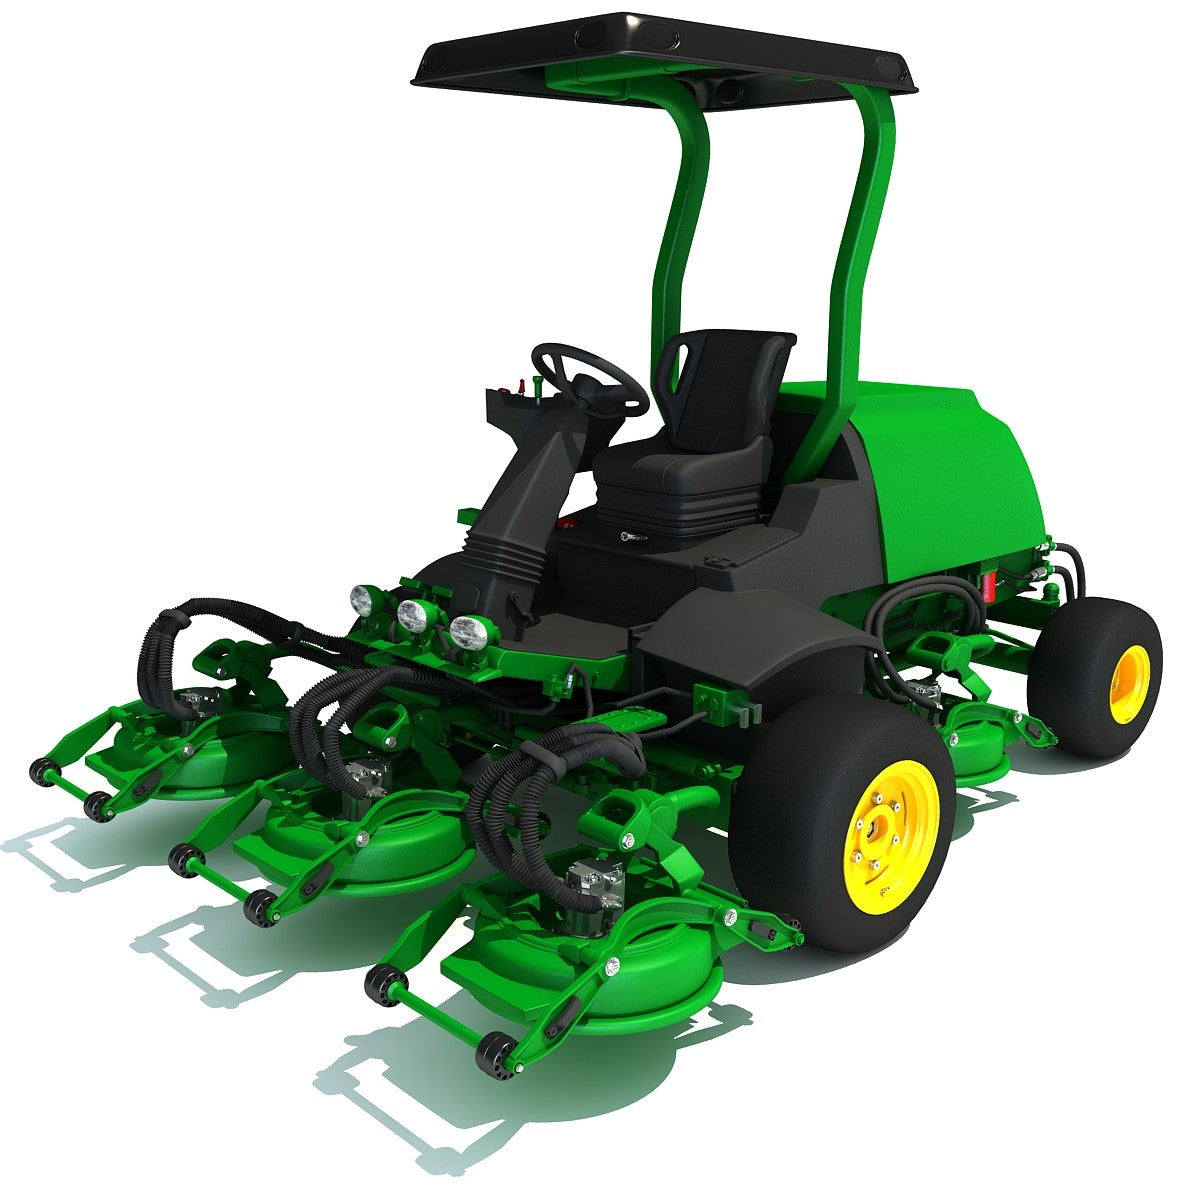 Lawn Mower Terraincut Model